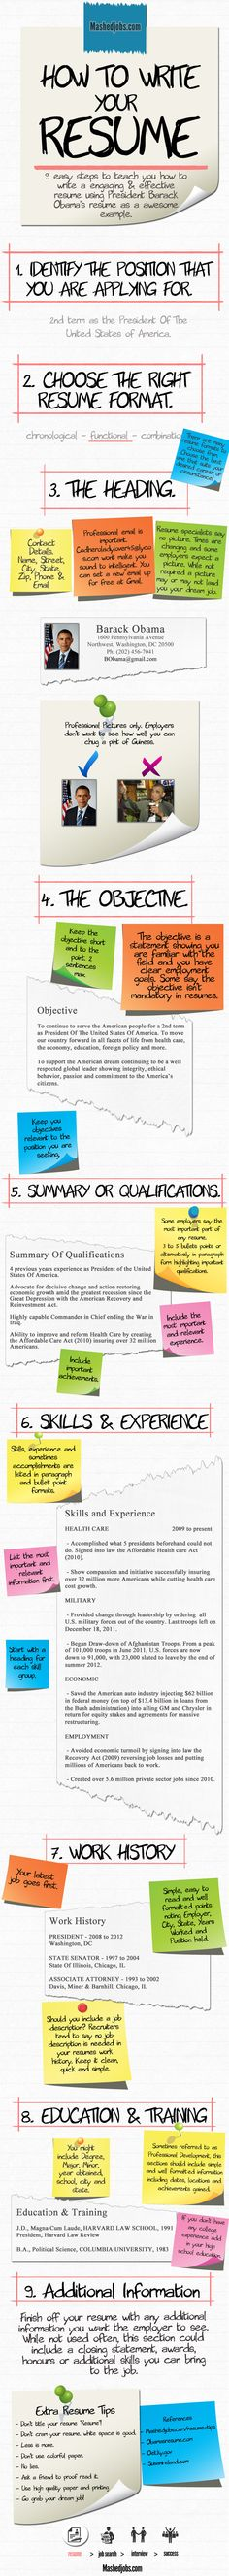 18 Best Resumé images | Cover letter for resume, Writing a cover ...